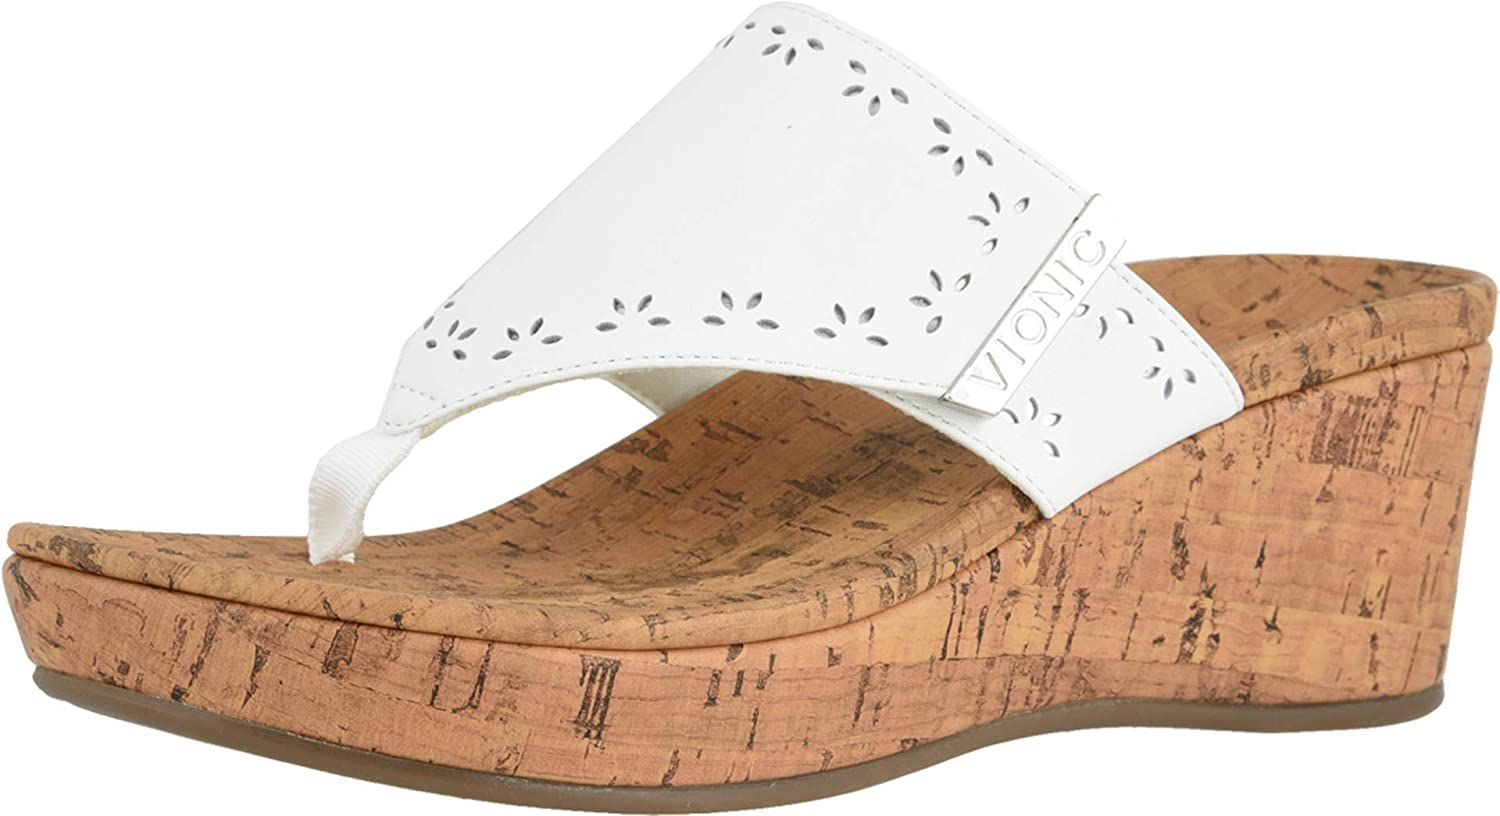 Max 65% OFF Vionic Women's Anitra Wedge Sandals -Toe-Post Outlet ☆ Free Shipping Sandal wi Platform